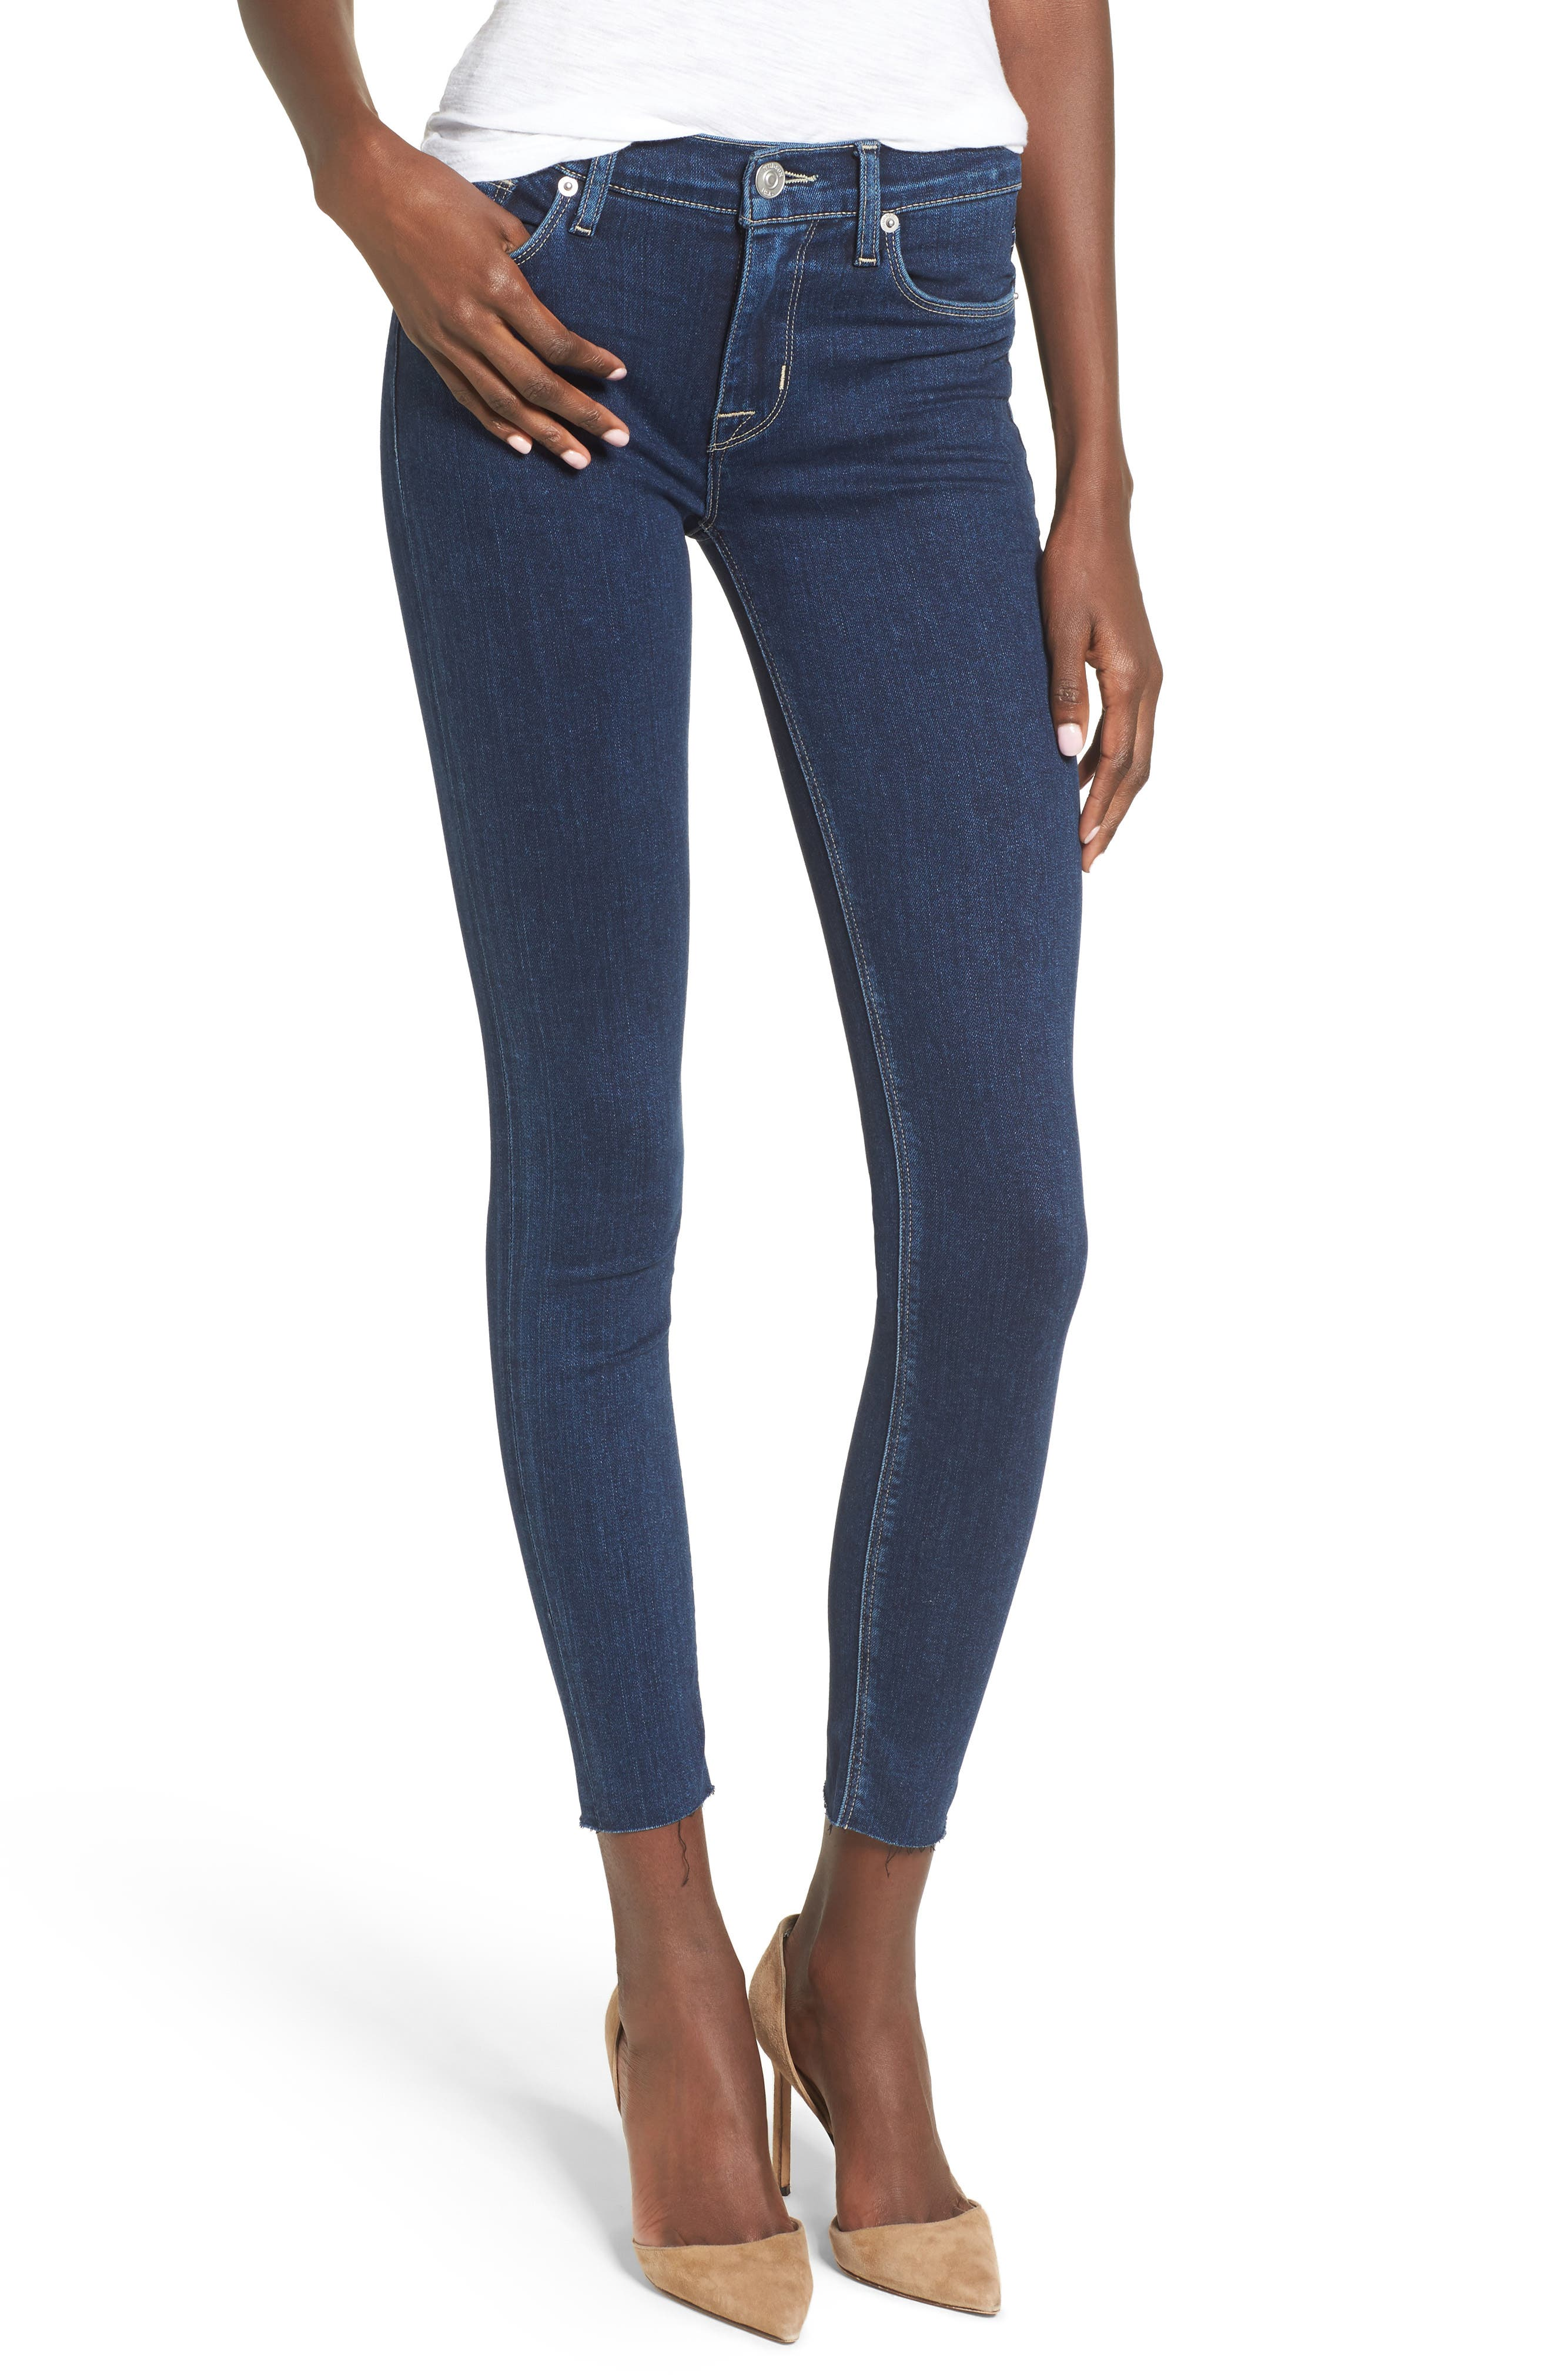 Main Image - Hudson Jeans Nico Ankle Skinny Jeans (Unruly)